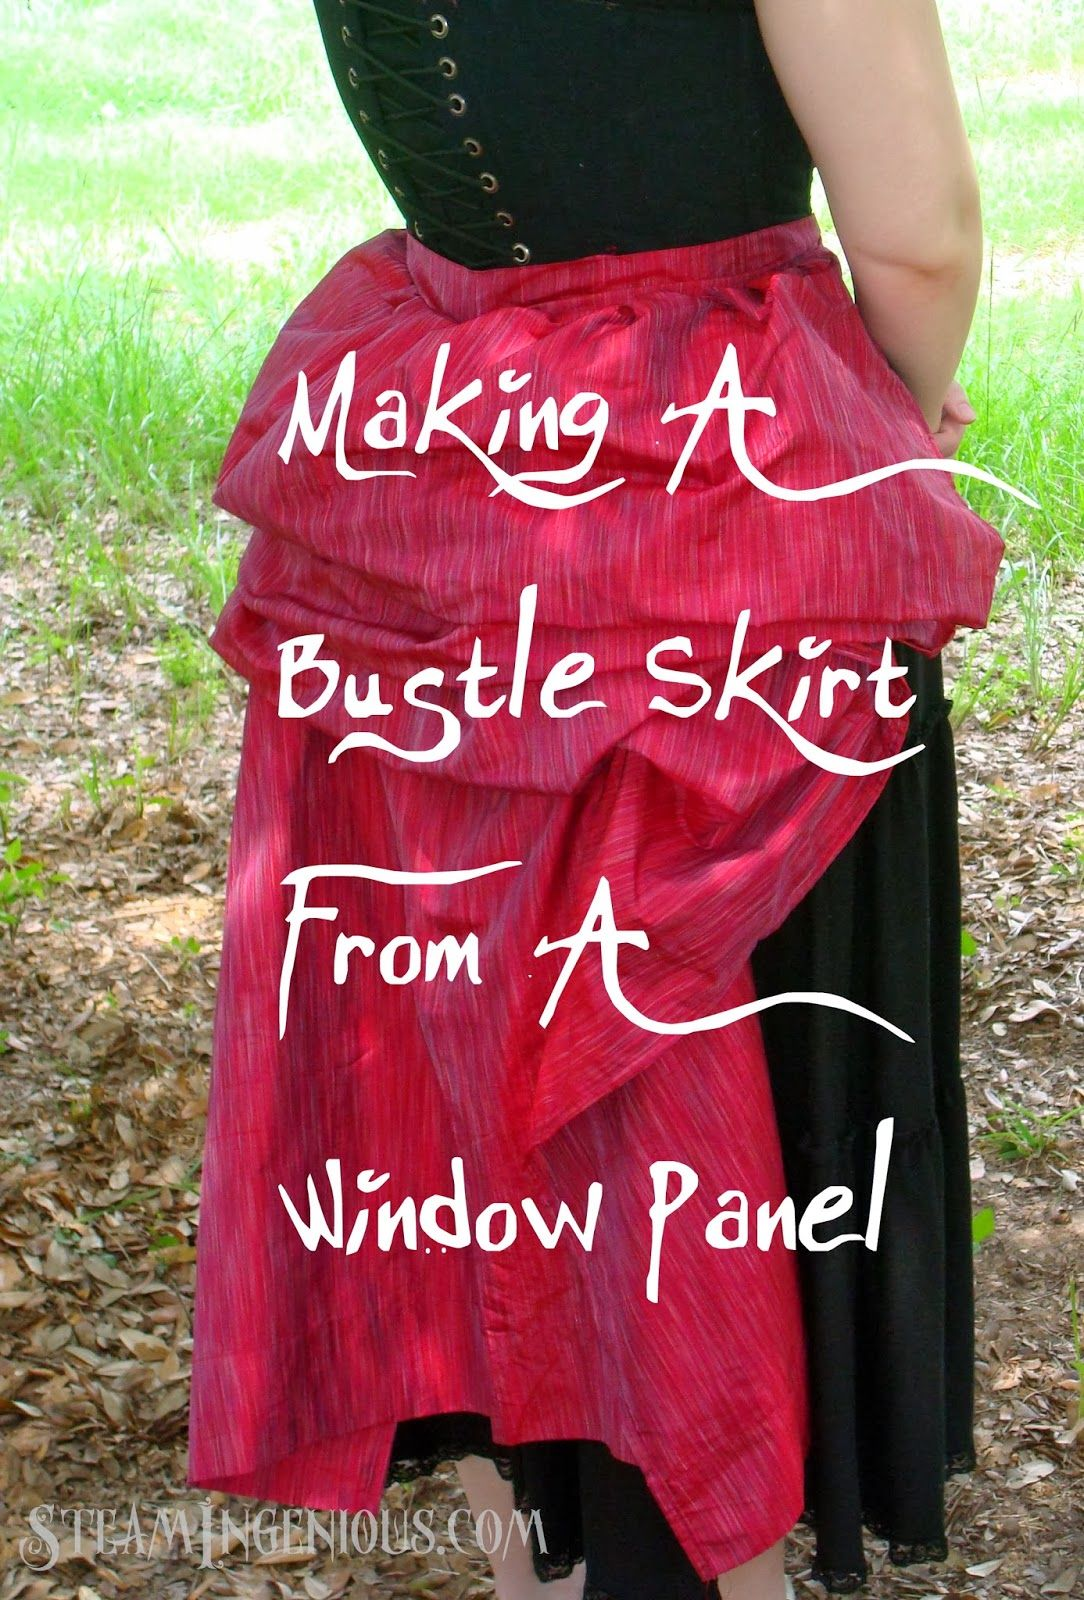 Steam Ingenious Tutorial How To Make A Bustle Skirt From A Window Panel Steampunk Skirt Steampunk Diy Costume Victorian Costume